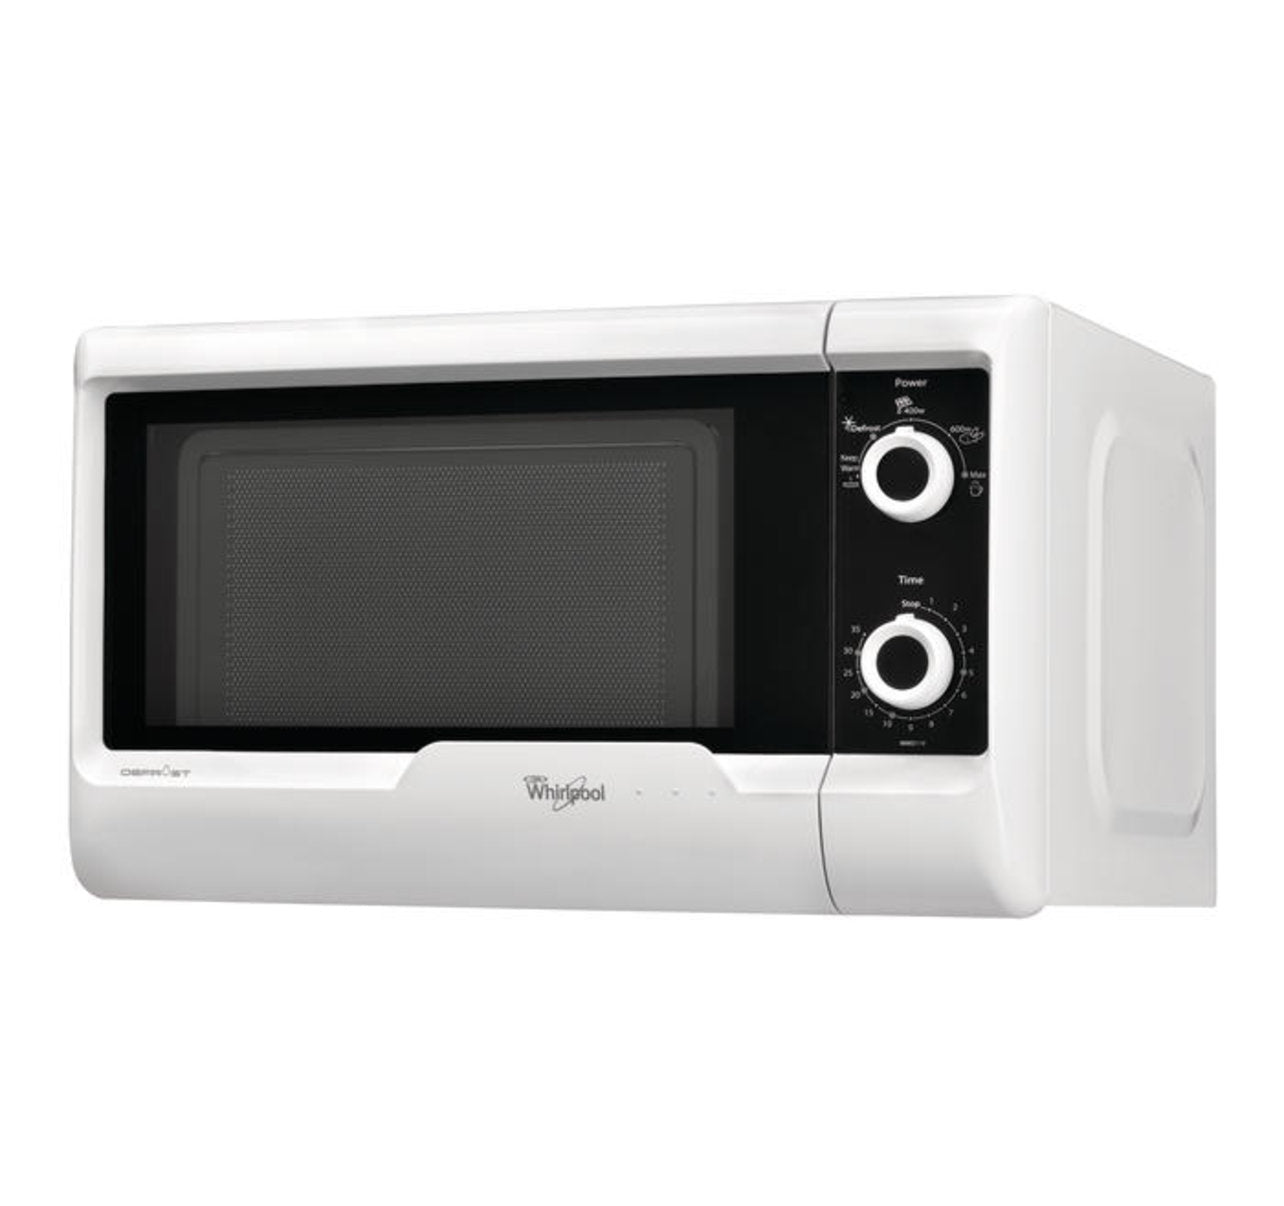 Whirlpool MWD 119WH- Freestanding Microwave 700W, 20L, 5 power levels